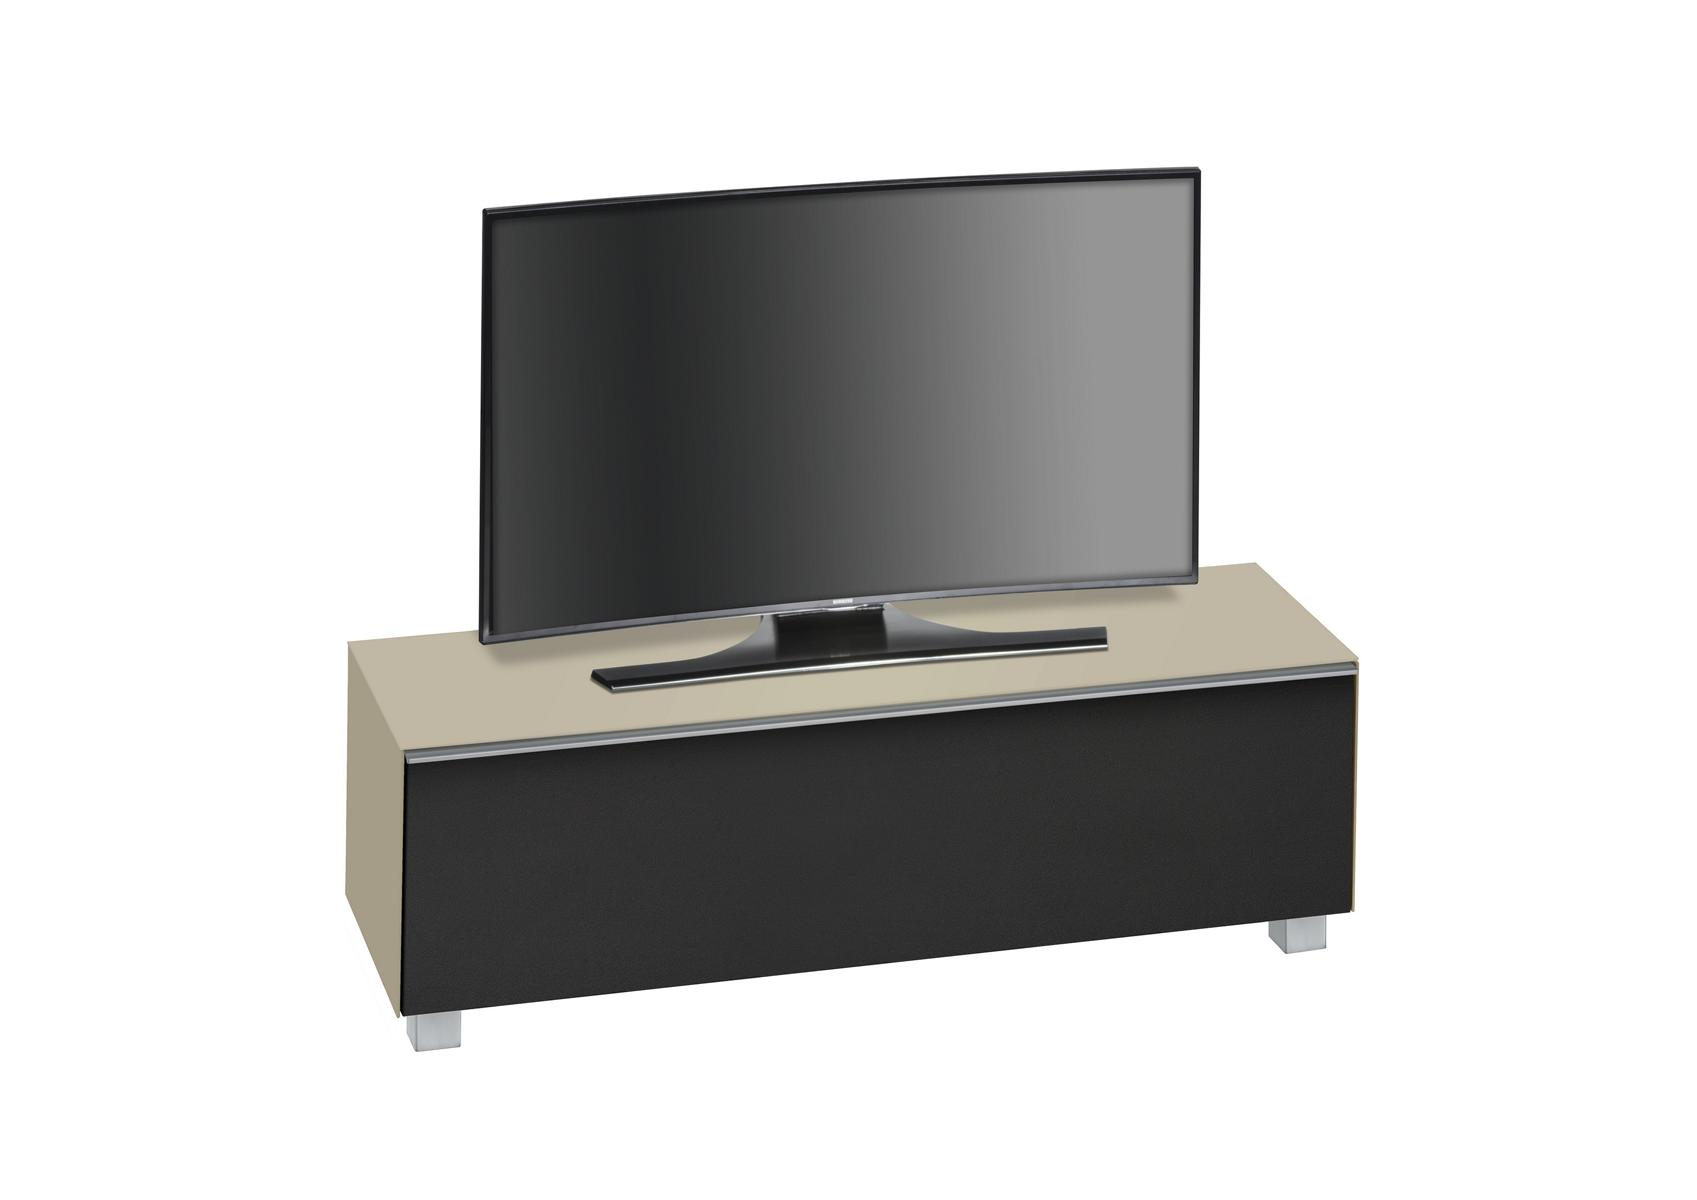 tv lowboard unterschrank fernsehschrank soundsystem mod mj336 sandglas schwarz ebay. Black Bedroom Furniture Sets. Home Design Ideas